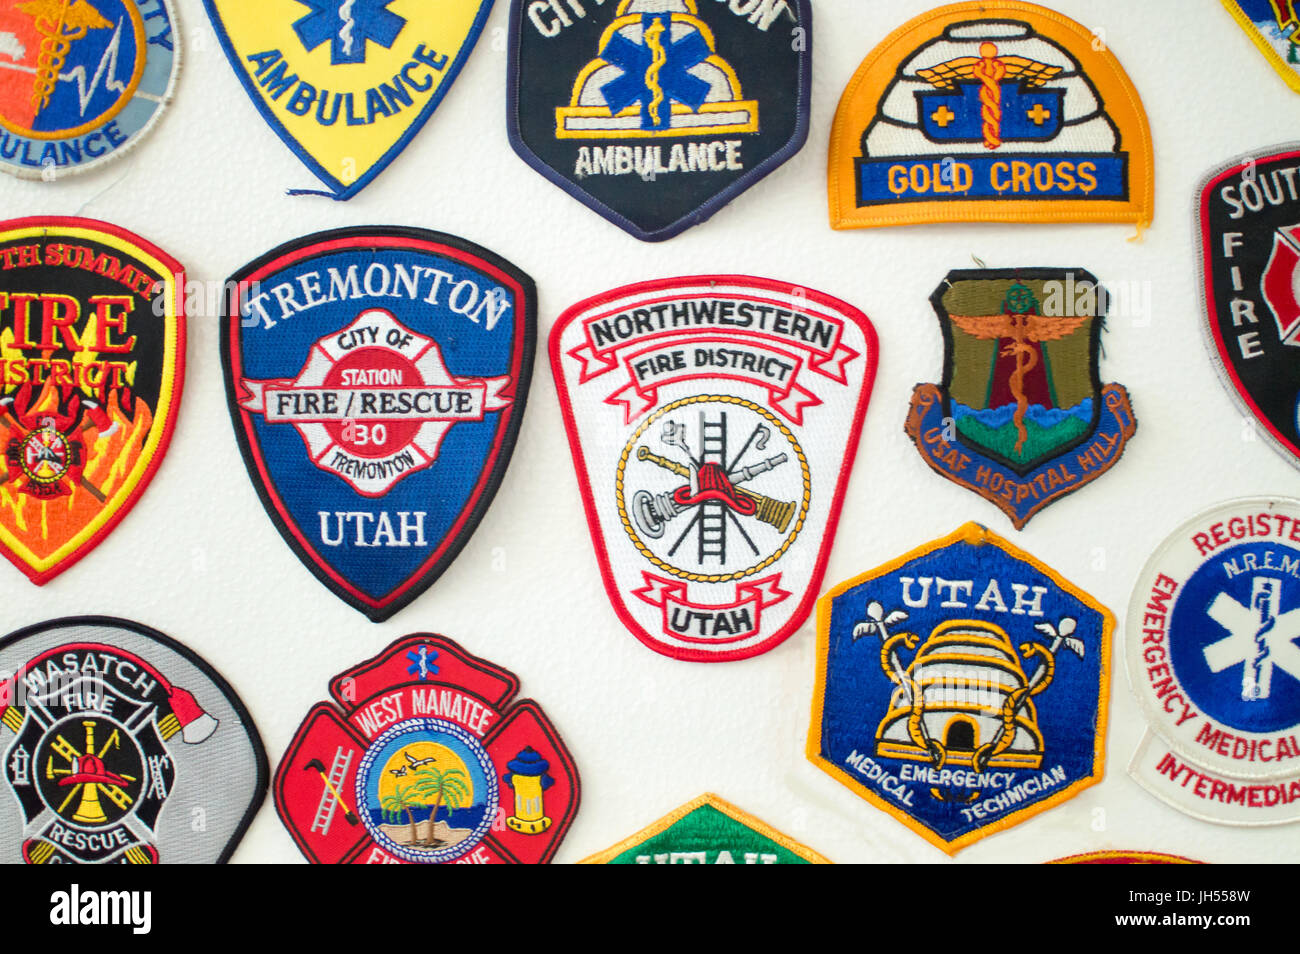 Emergency services patches on display. Main area is Utah - Stock Image